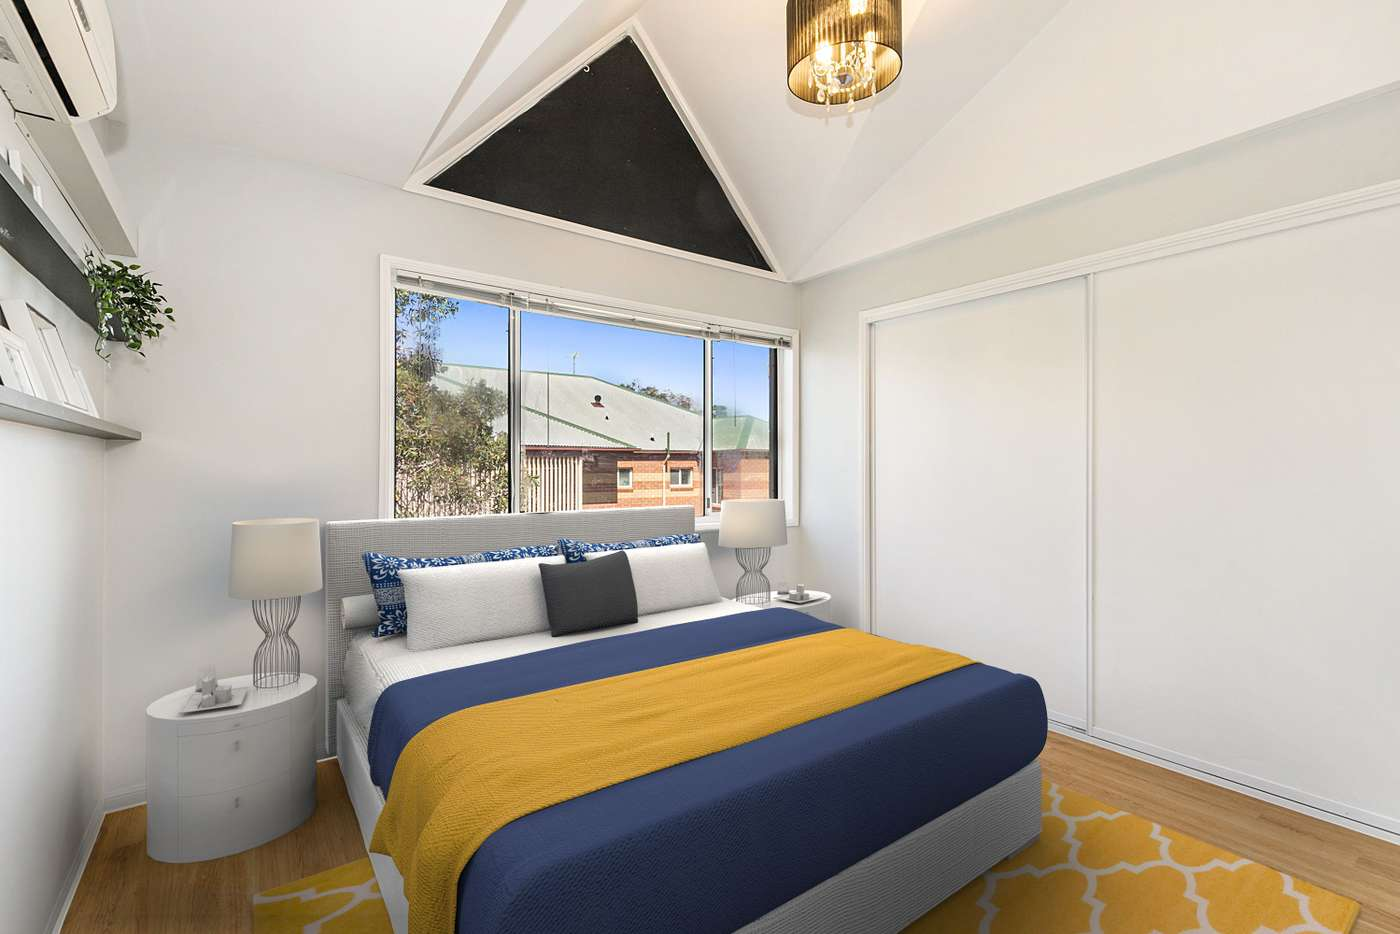 Fifth view of Homely unit listing, 5/99 Macquarie Street, St Lucia QLD 4067